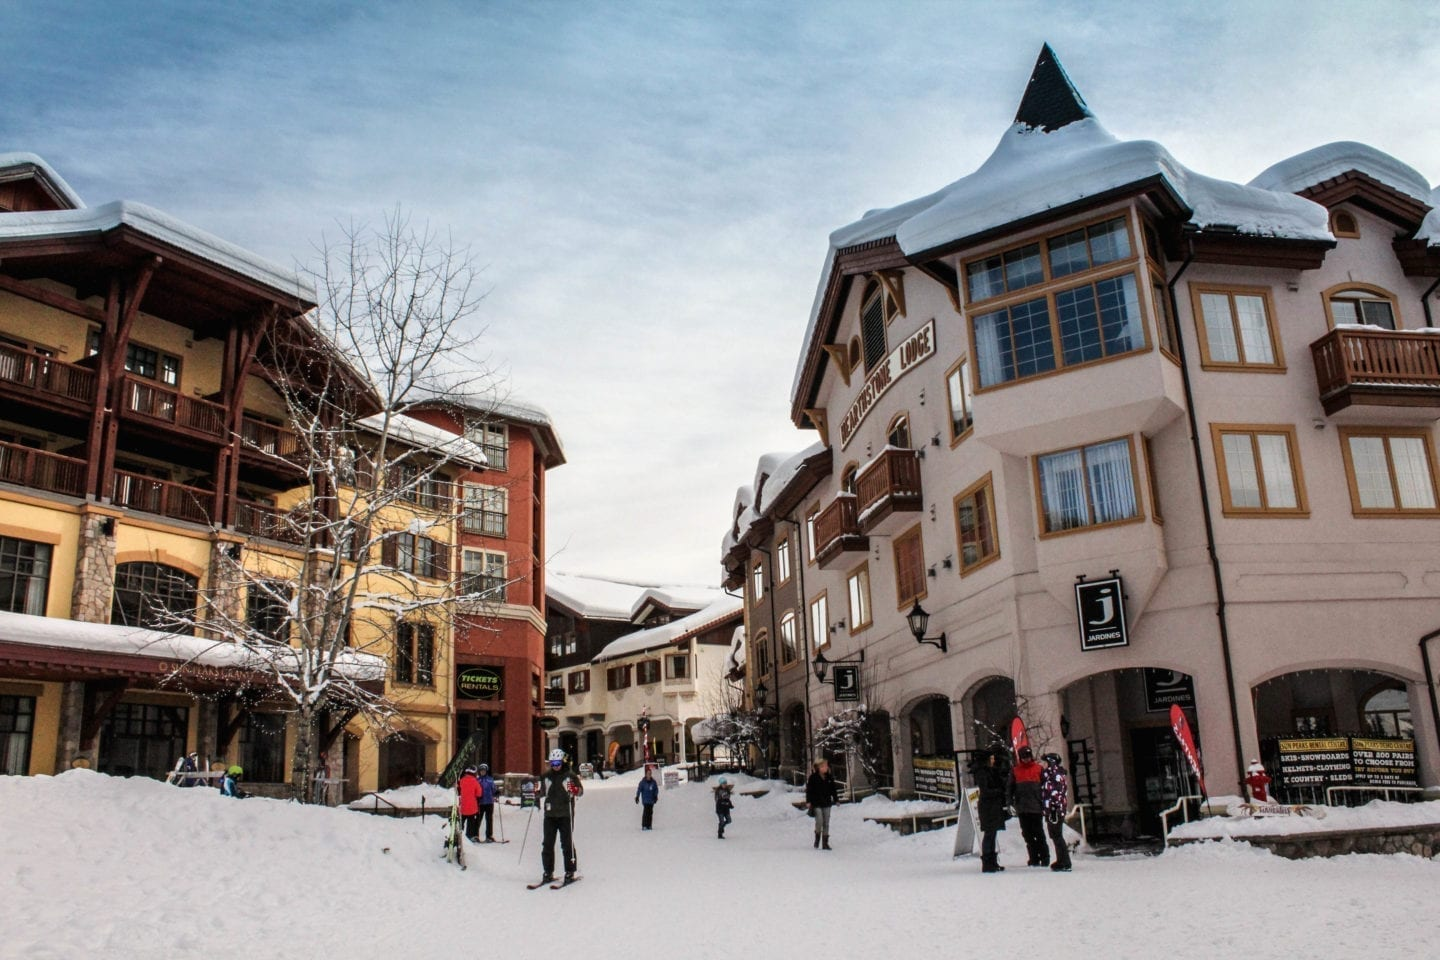 12 Things to Do at Sun Peaks Resort if You Don't Ski